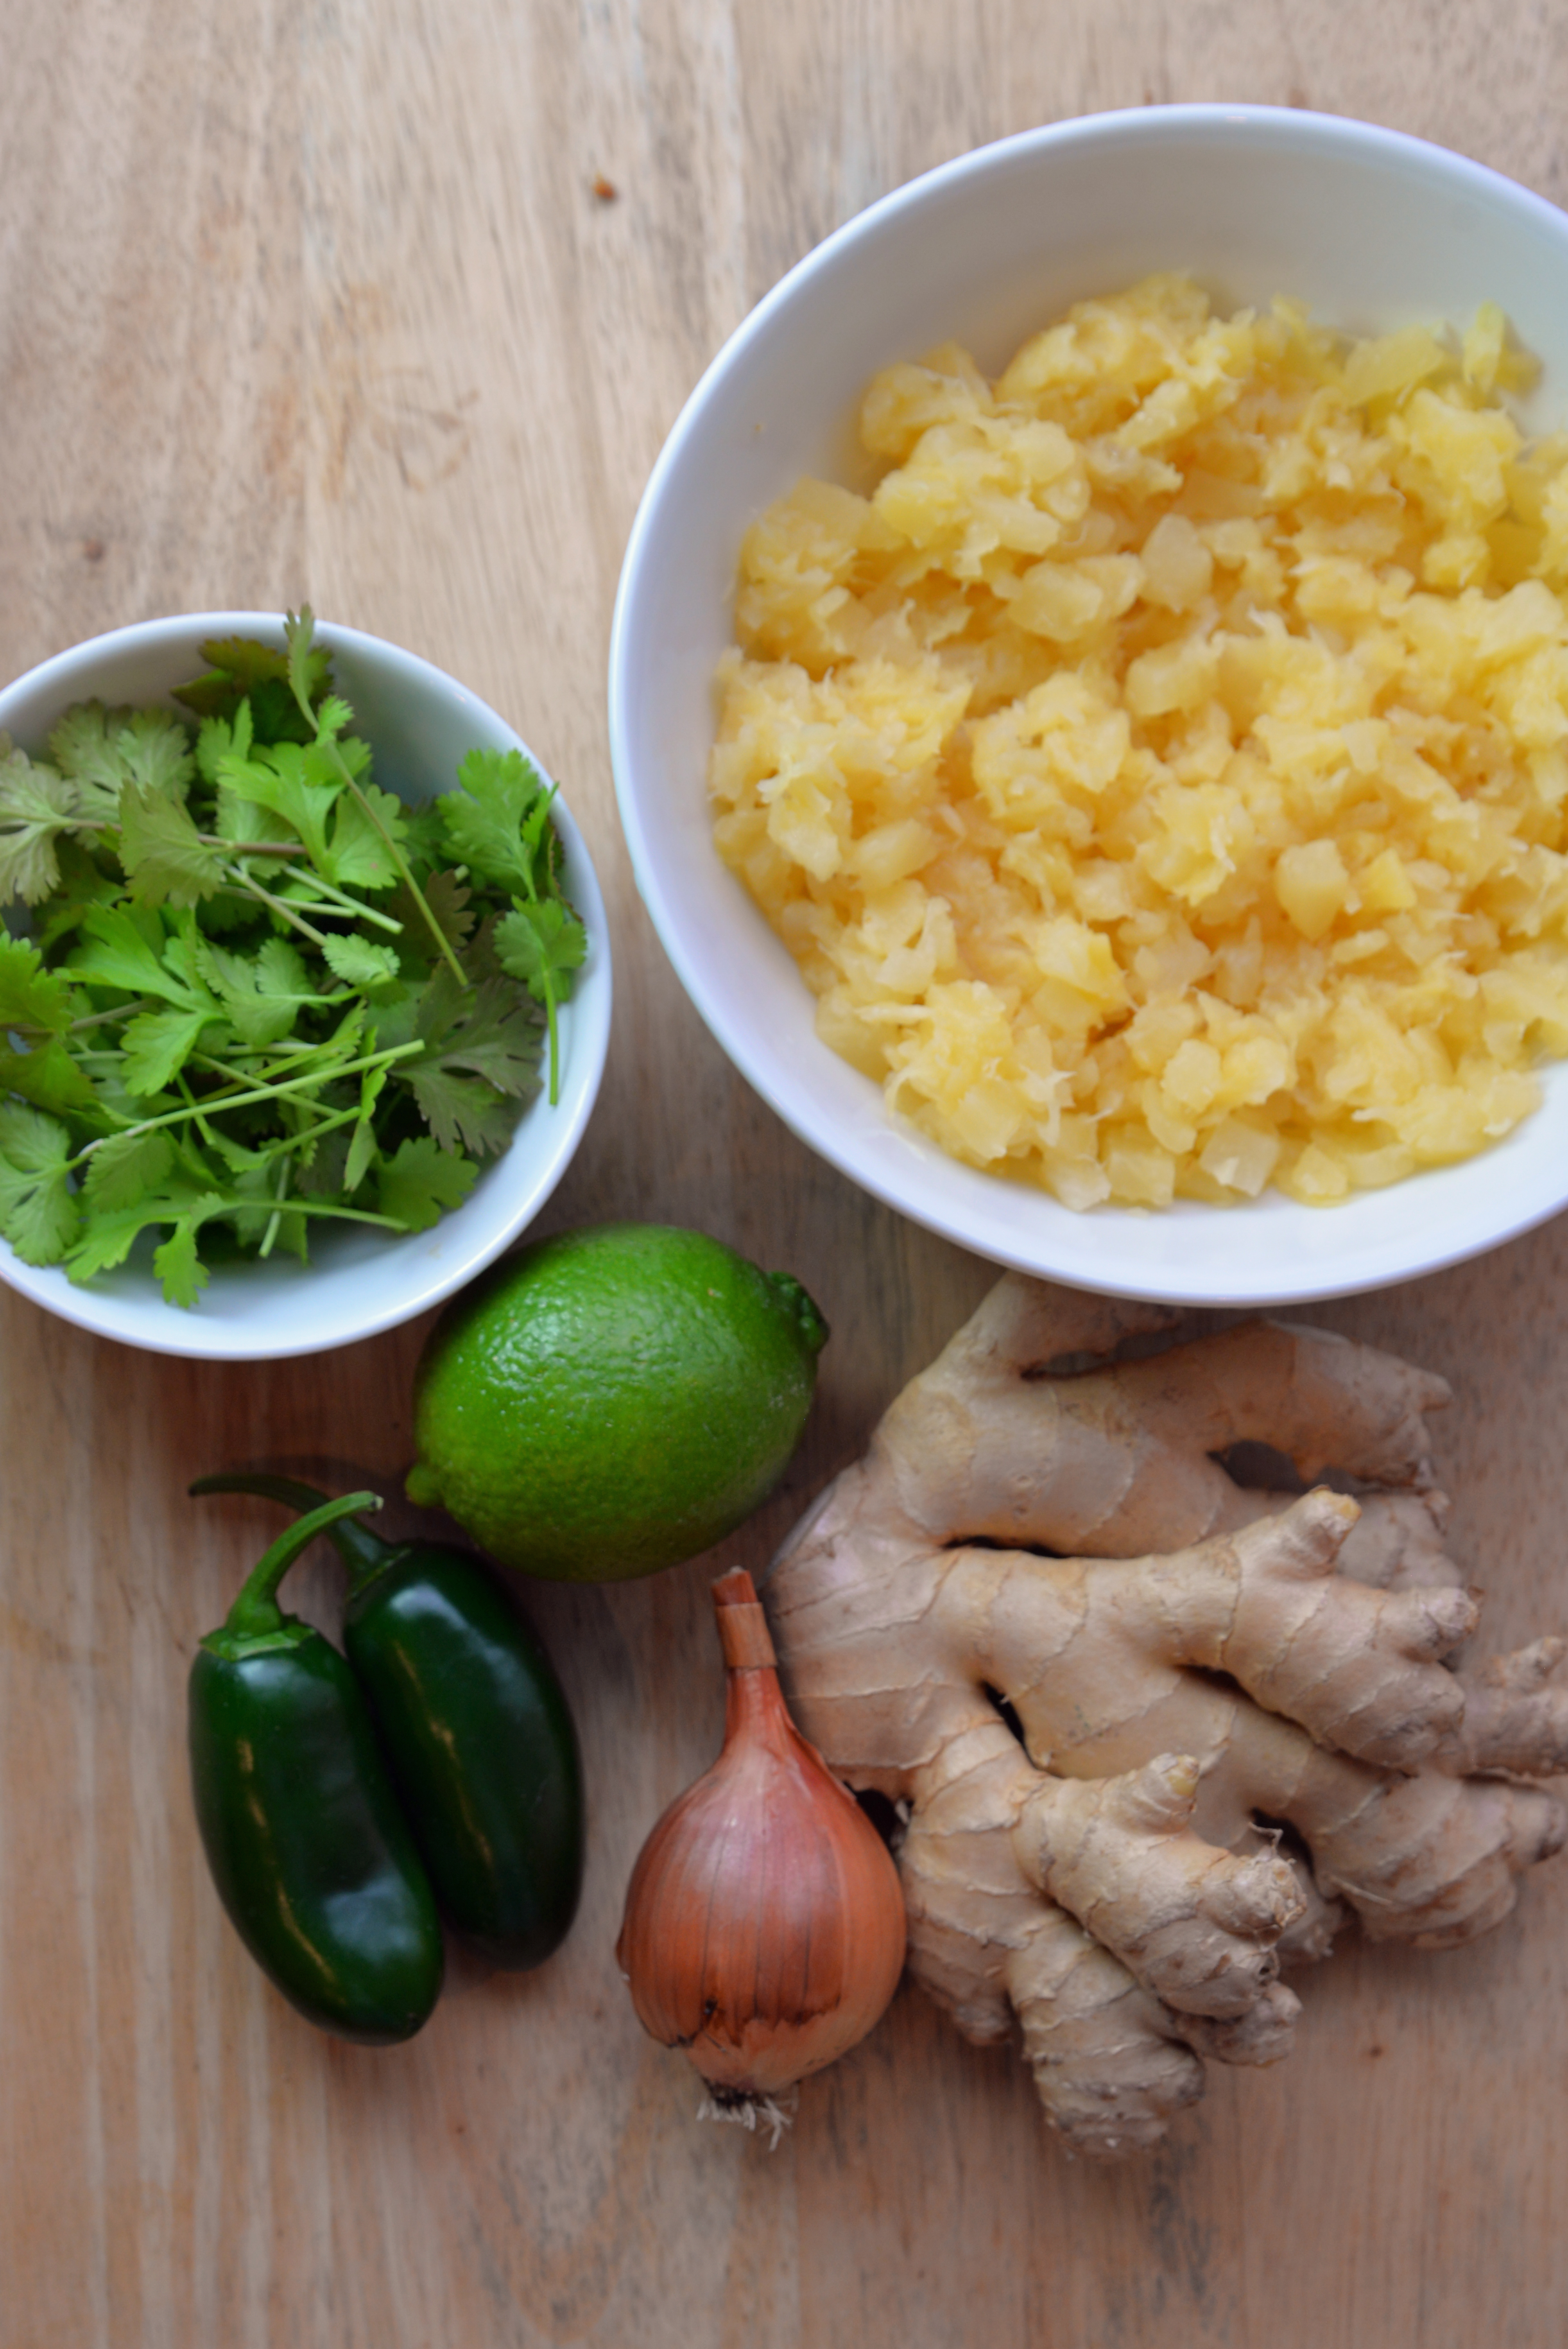 Ingredients Pineapple Fried Rice